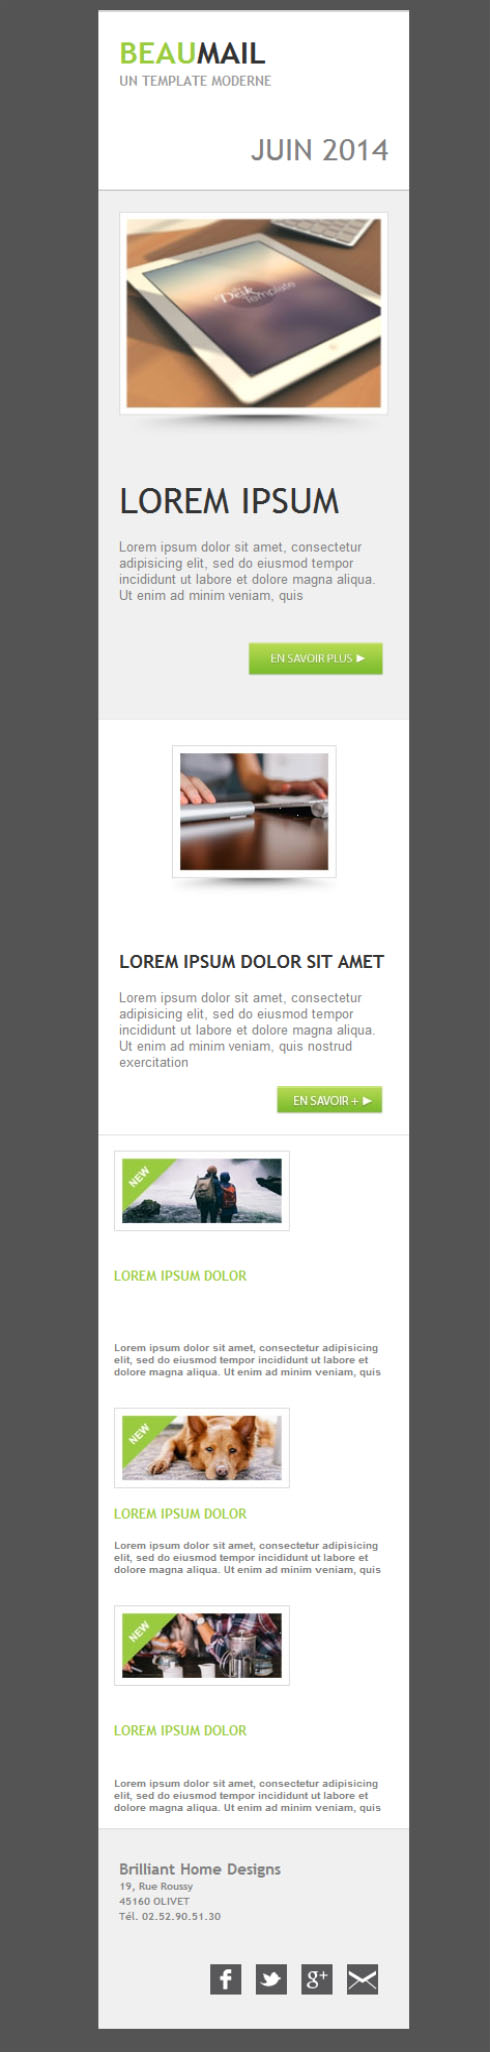 Templates Emailing Nice email - green Sarbacane